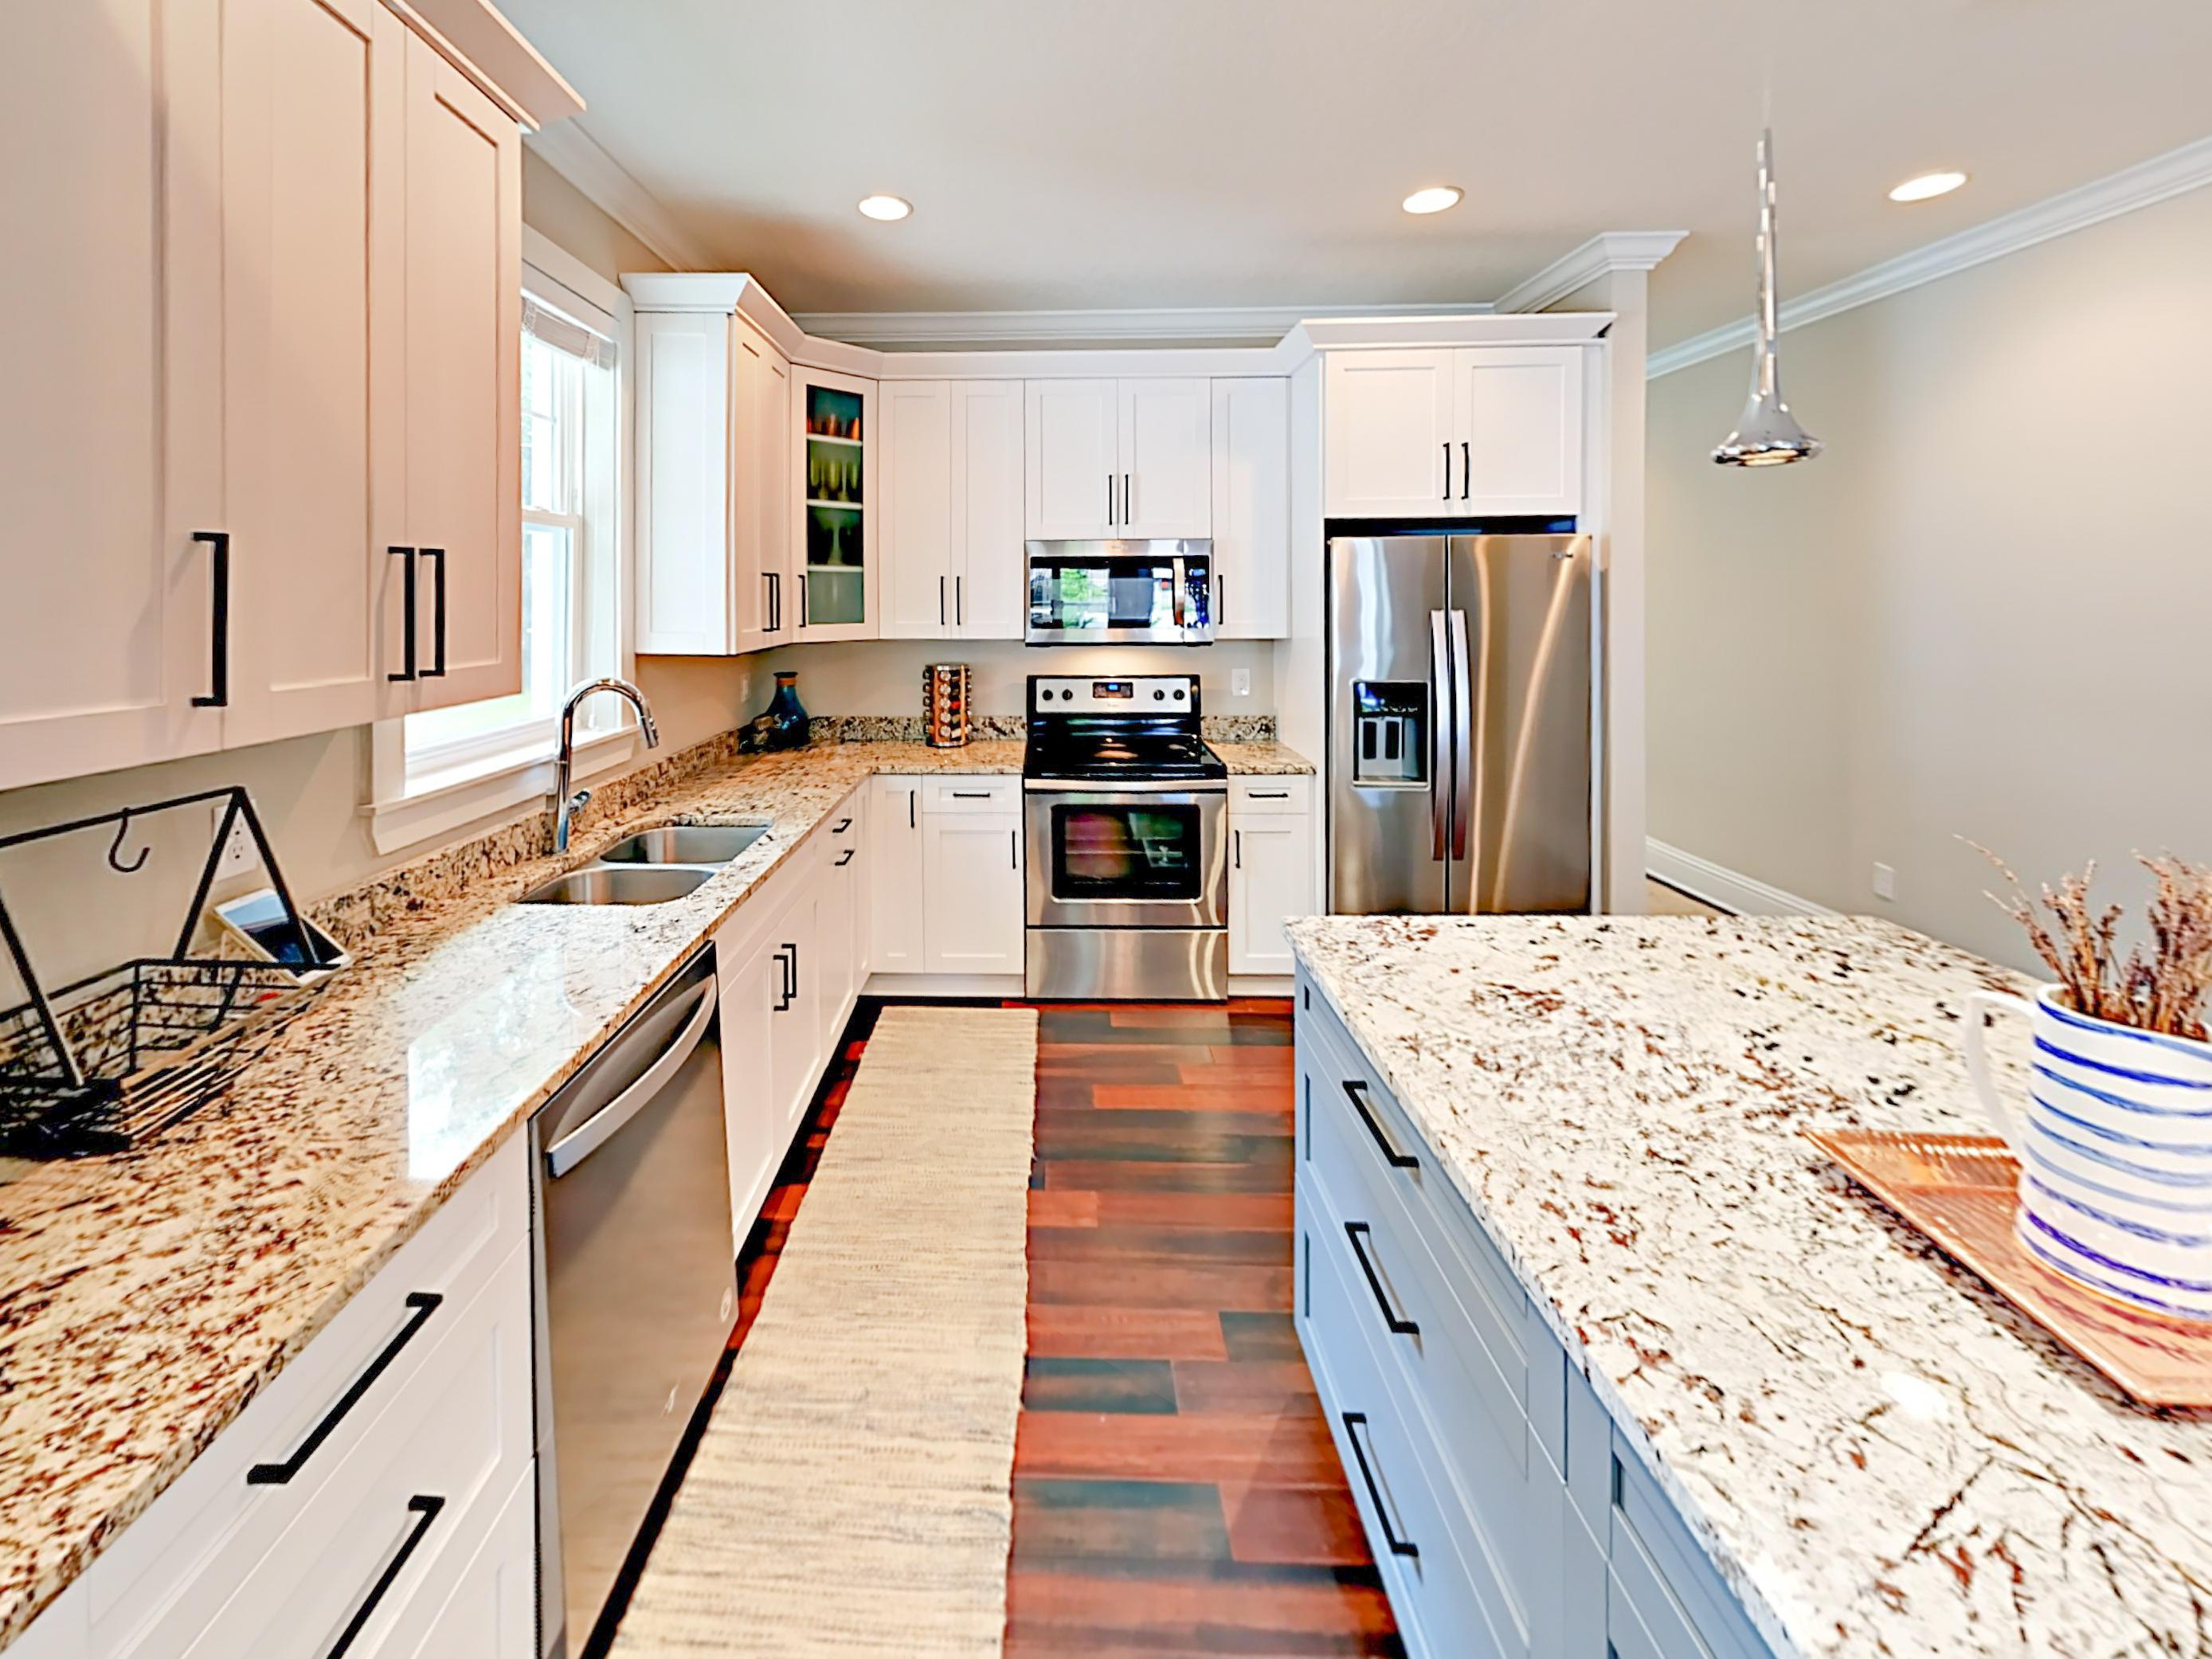 A stainless steel French-door fridge and gleaming granite counters welcome you into the gourmet kitchen.